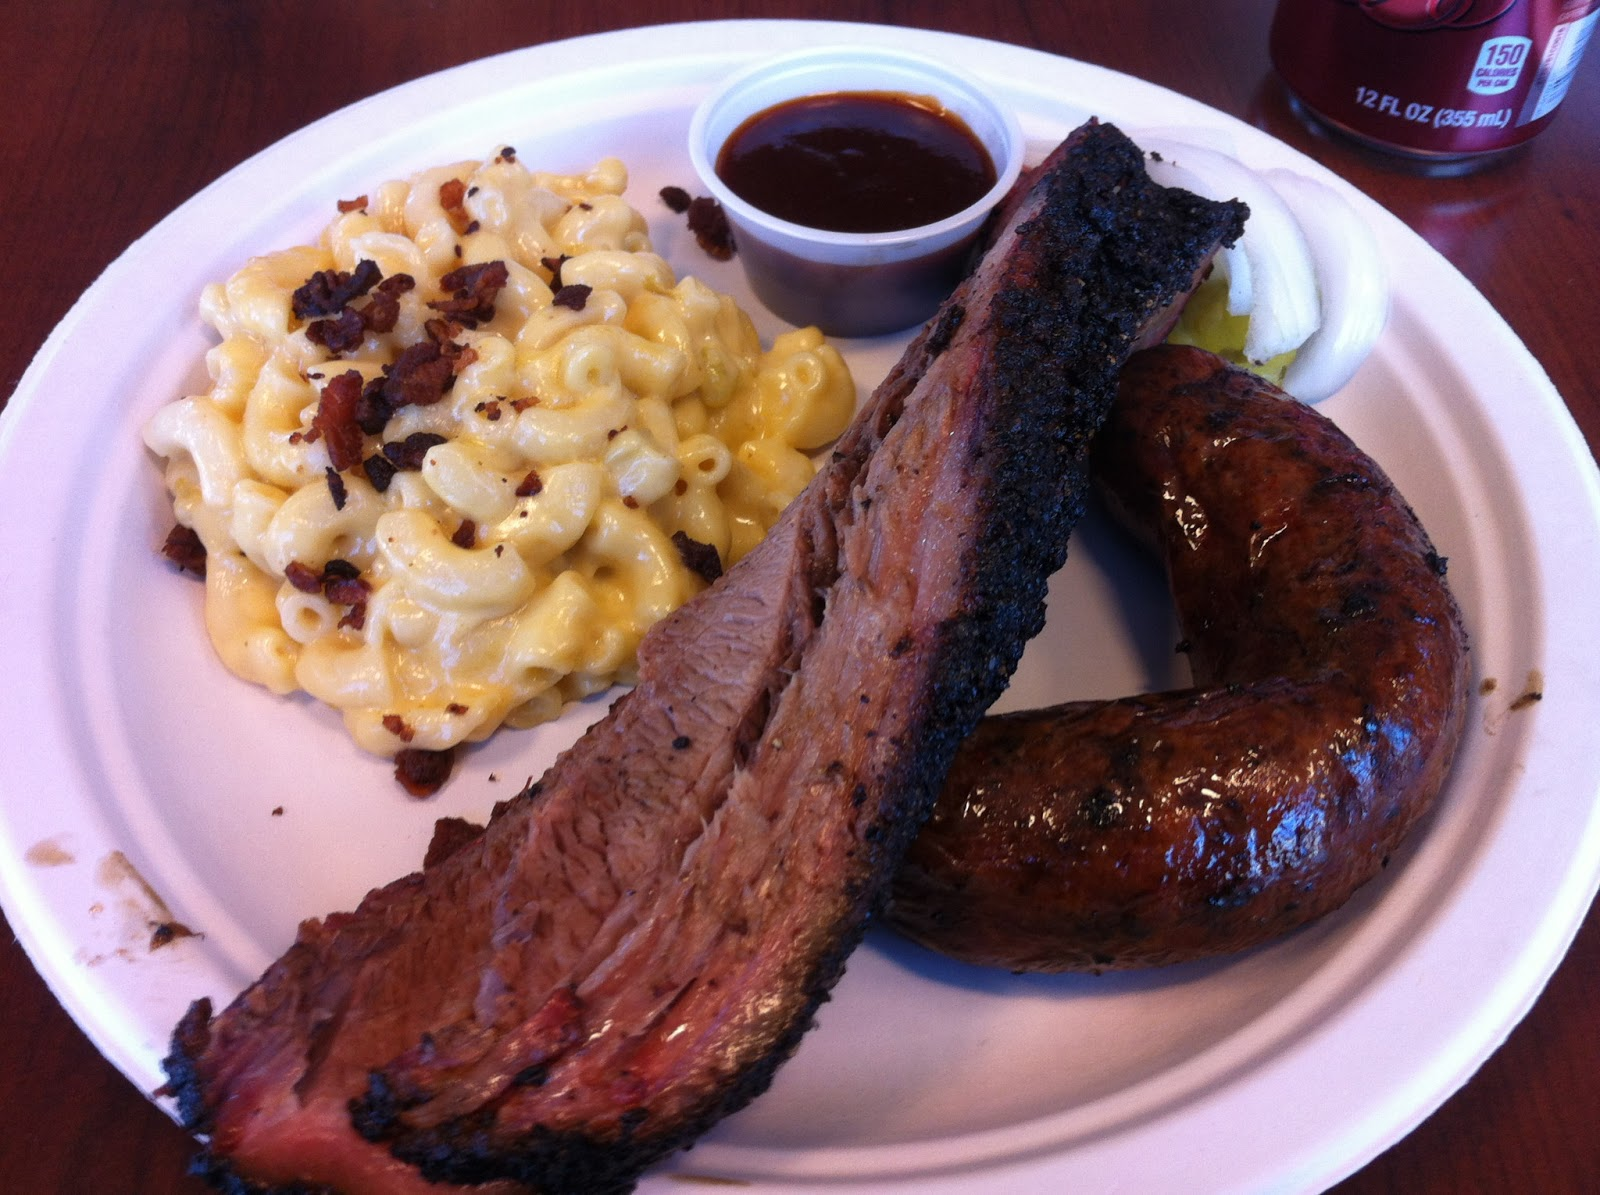 Pecan Lodge Dallas BBQ Barbecue Barbeque Bar-B-Que Brisket Sausage Macaroni Mac Cheese Combo